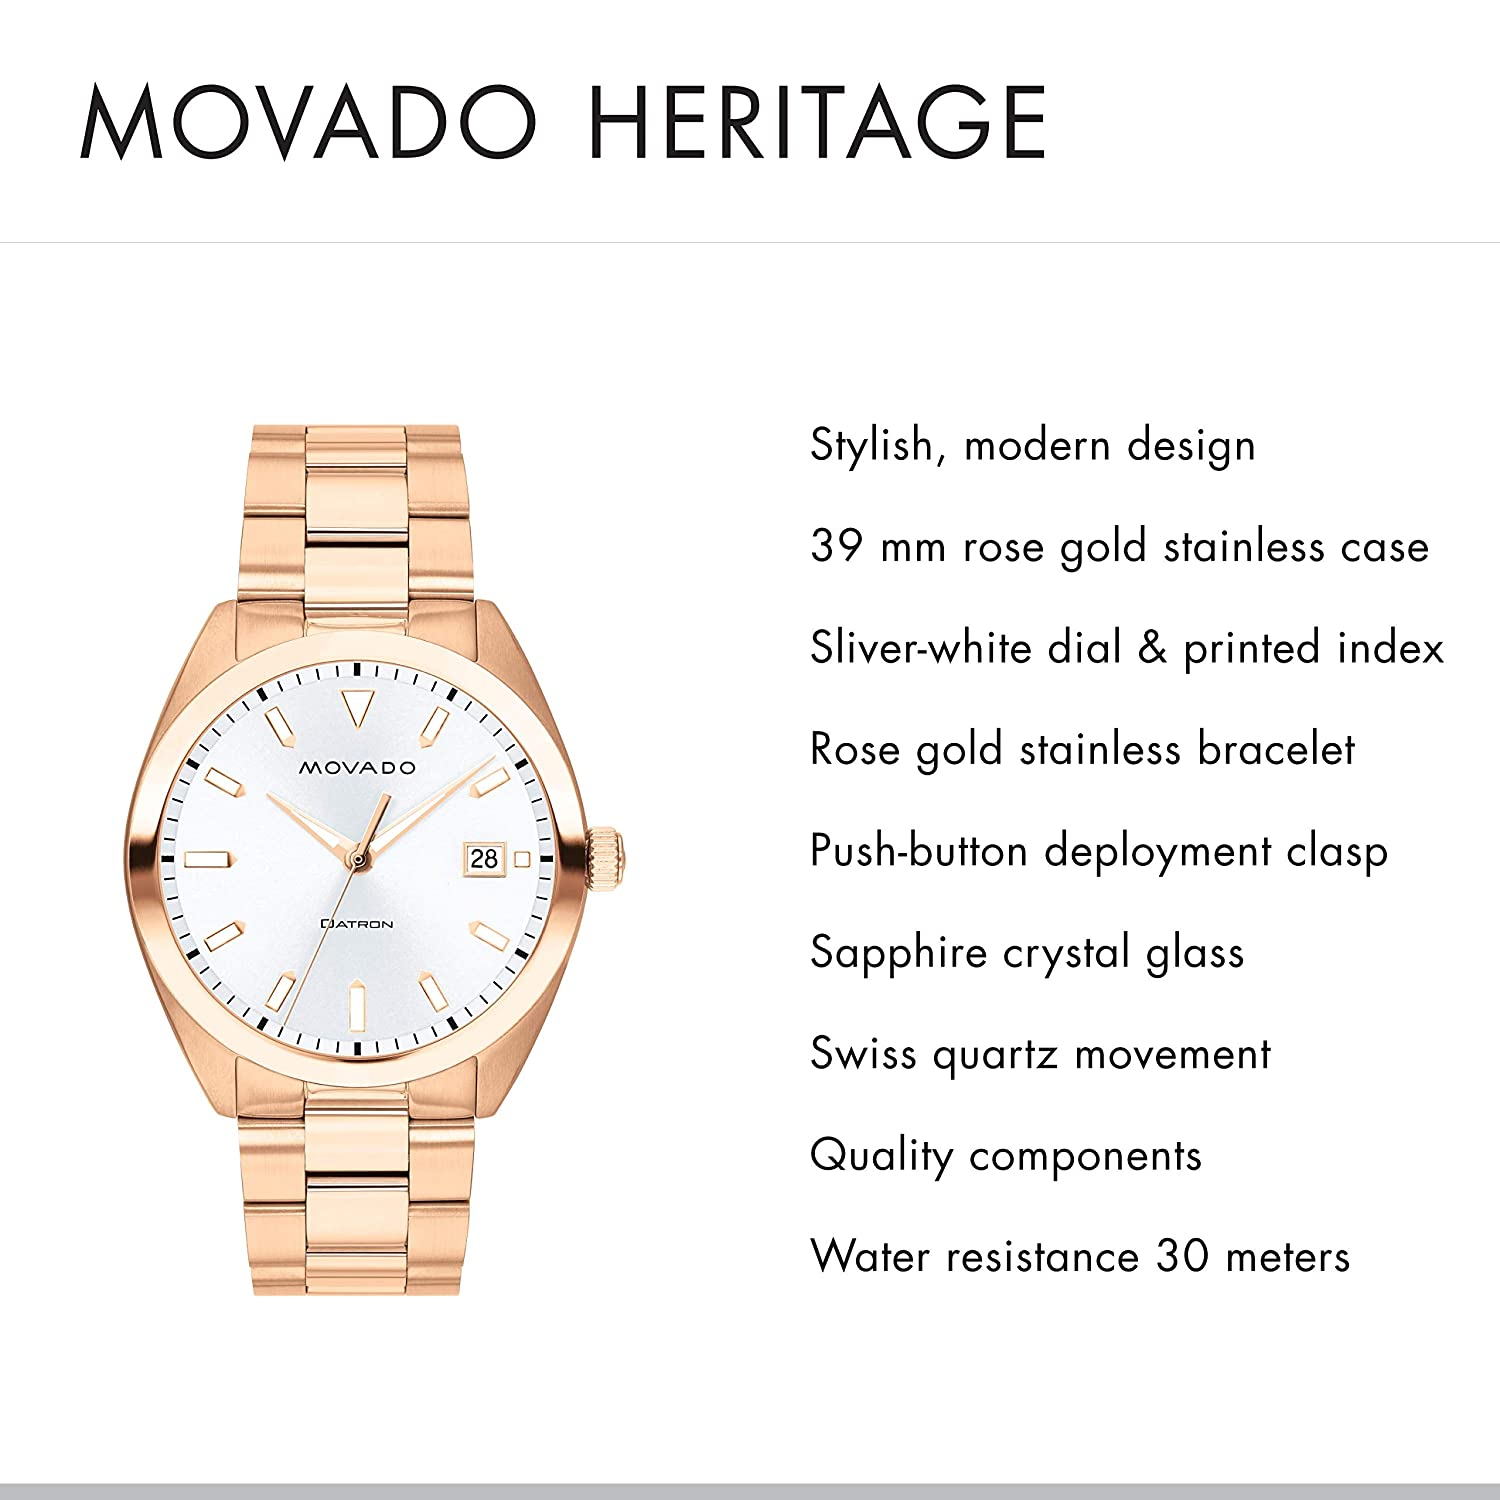 925576bd9 Amazon.com: Movado Men's Heritage Rose Gold Watch with a Printed Index  Dial, Pink/Gold/White (Model 3650058): Watches